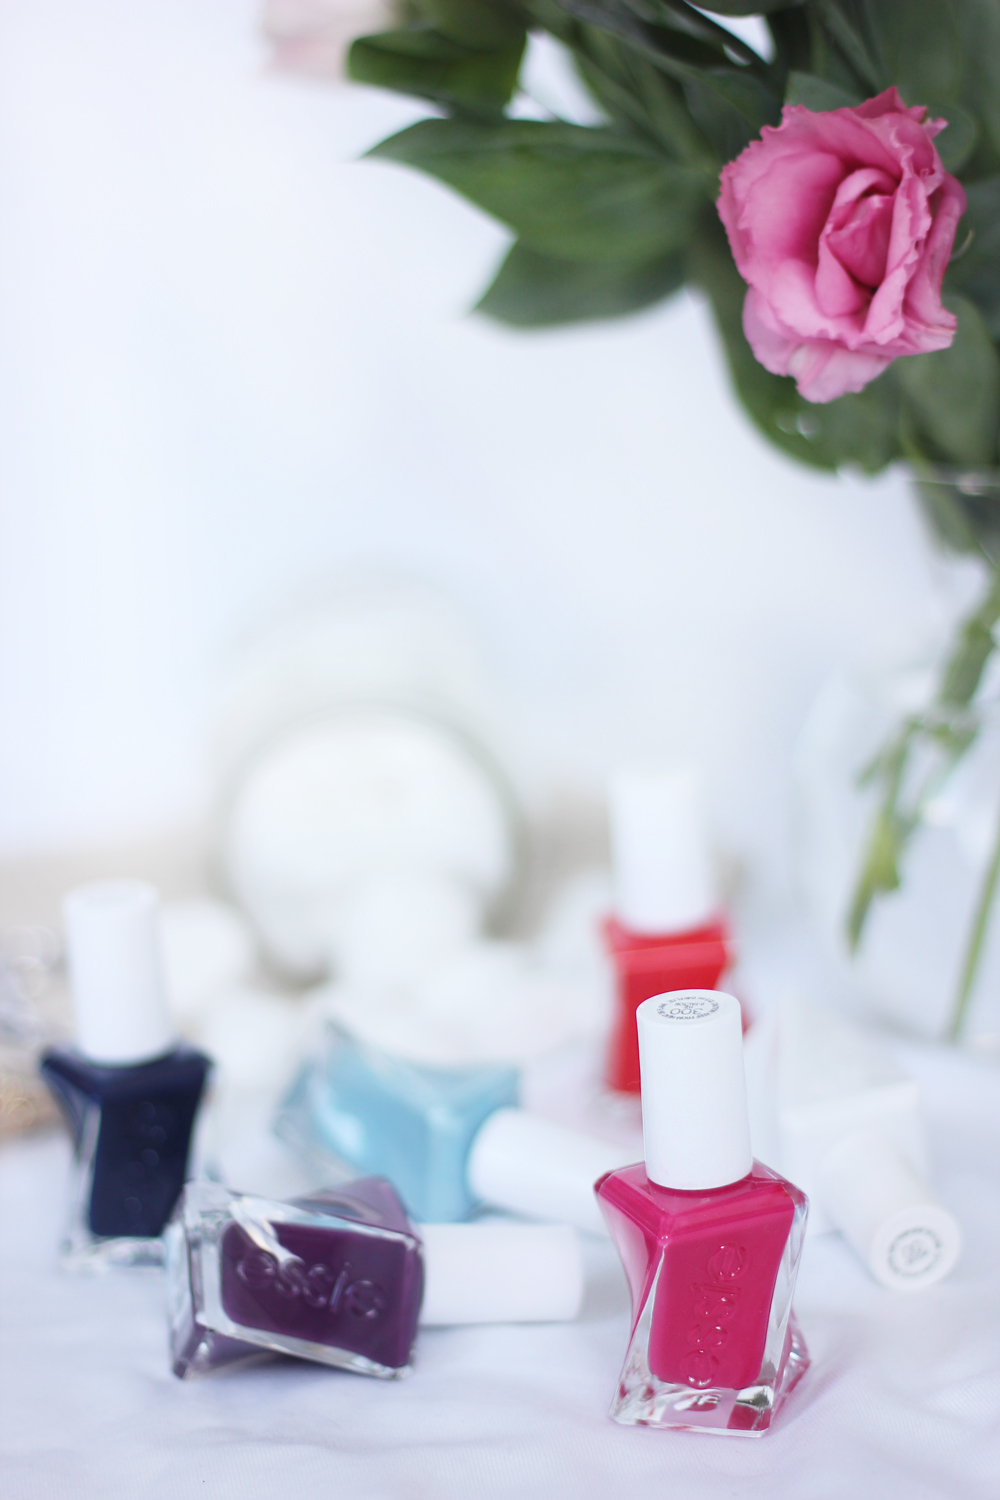 How to do an easy at-home gel manicure: Use Essie Gel Couture nail polish